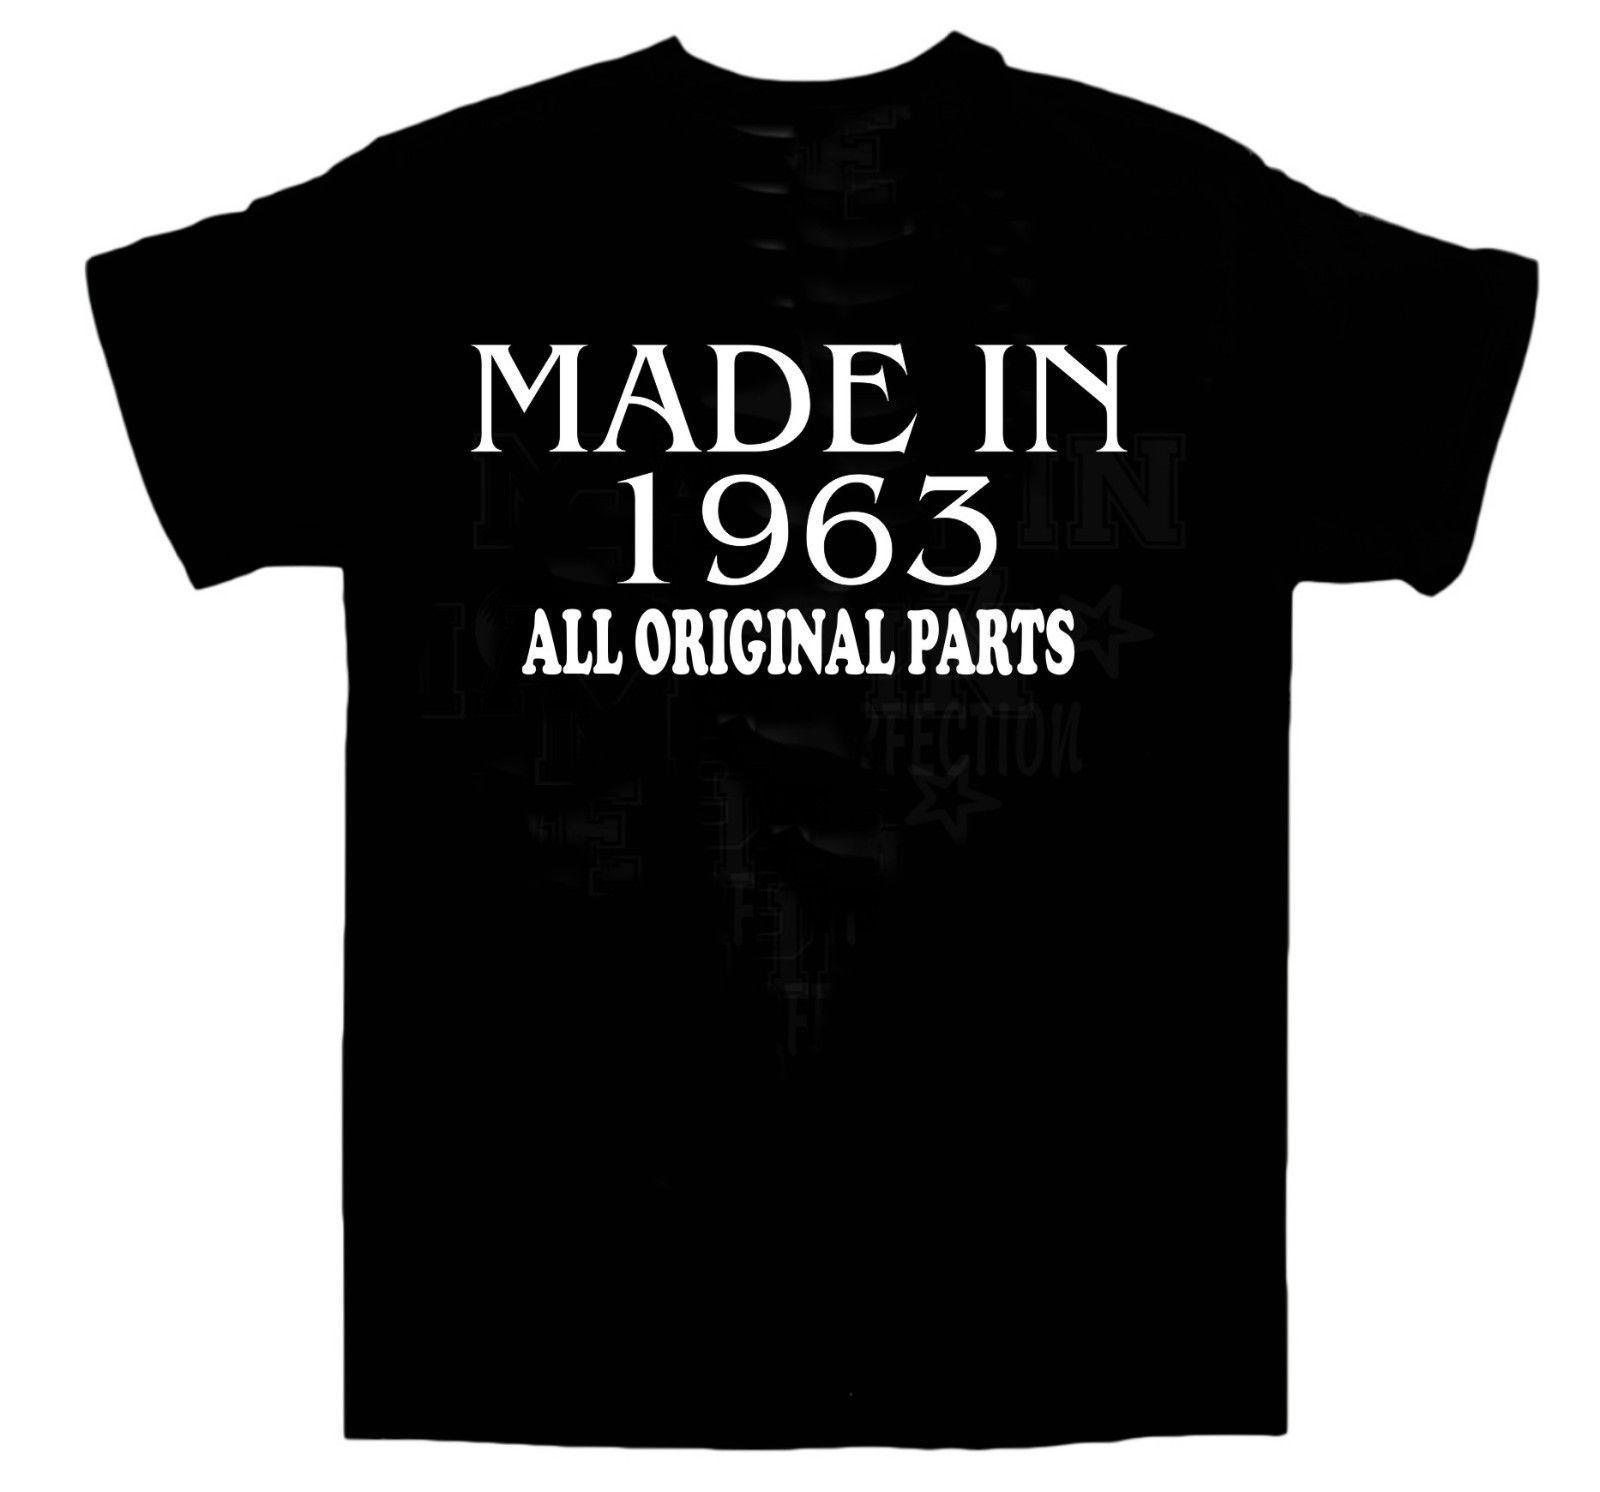 347a75a7e Made In 1963 BIRTHDAY T SHIRT All Original Parts Birthday Gift Idea Choose  Size Funny Unisex Tshirt Top As T Shirt Online T Shirts Buy From  Tshirtbakers, ...